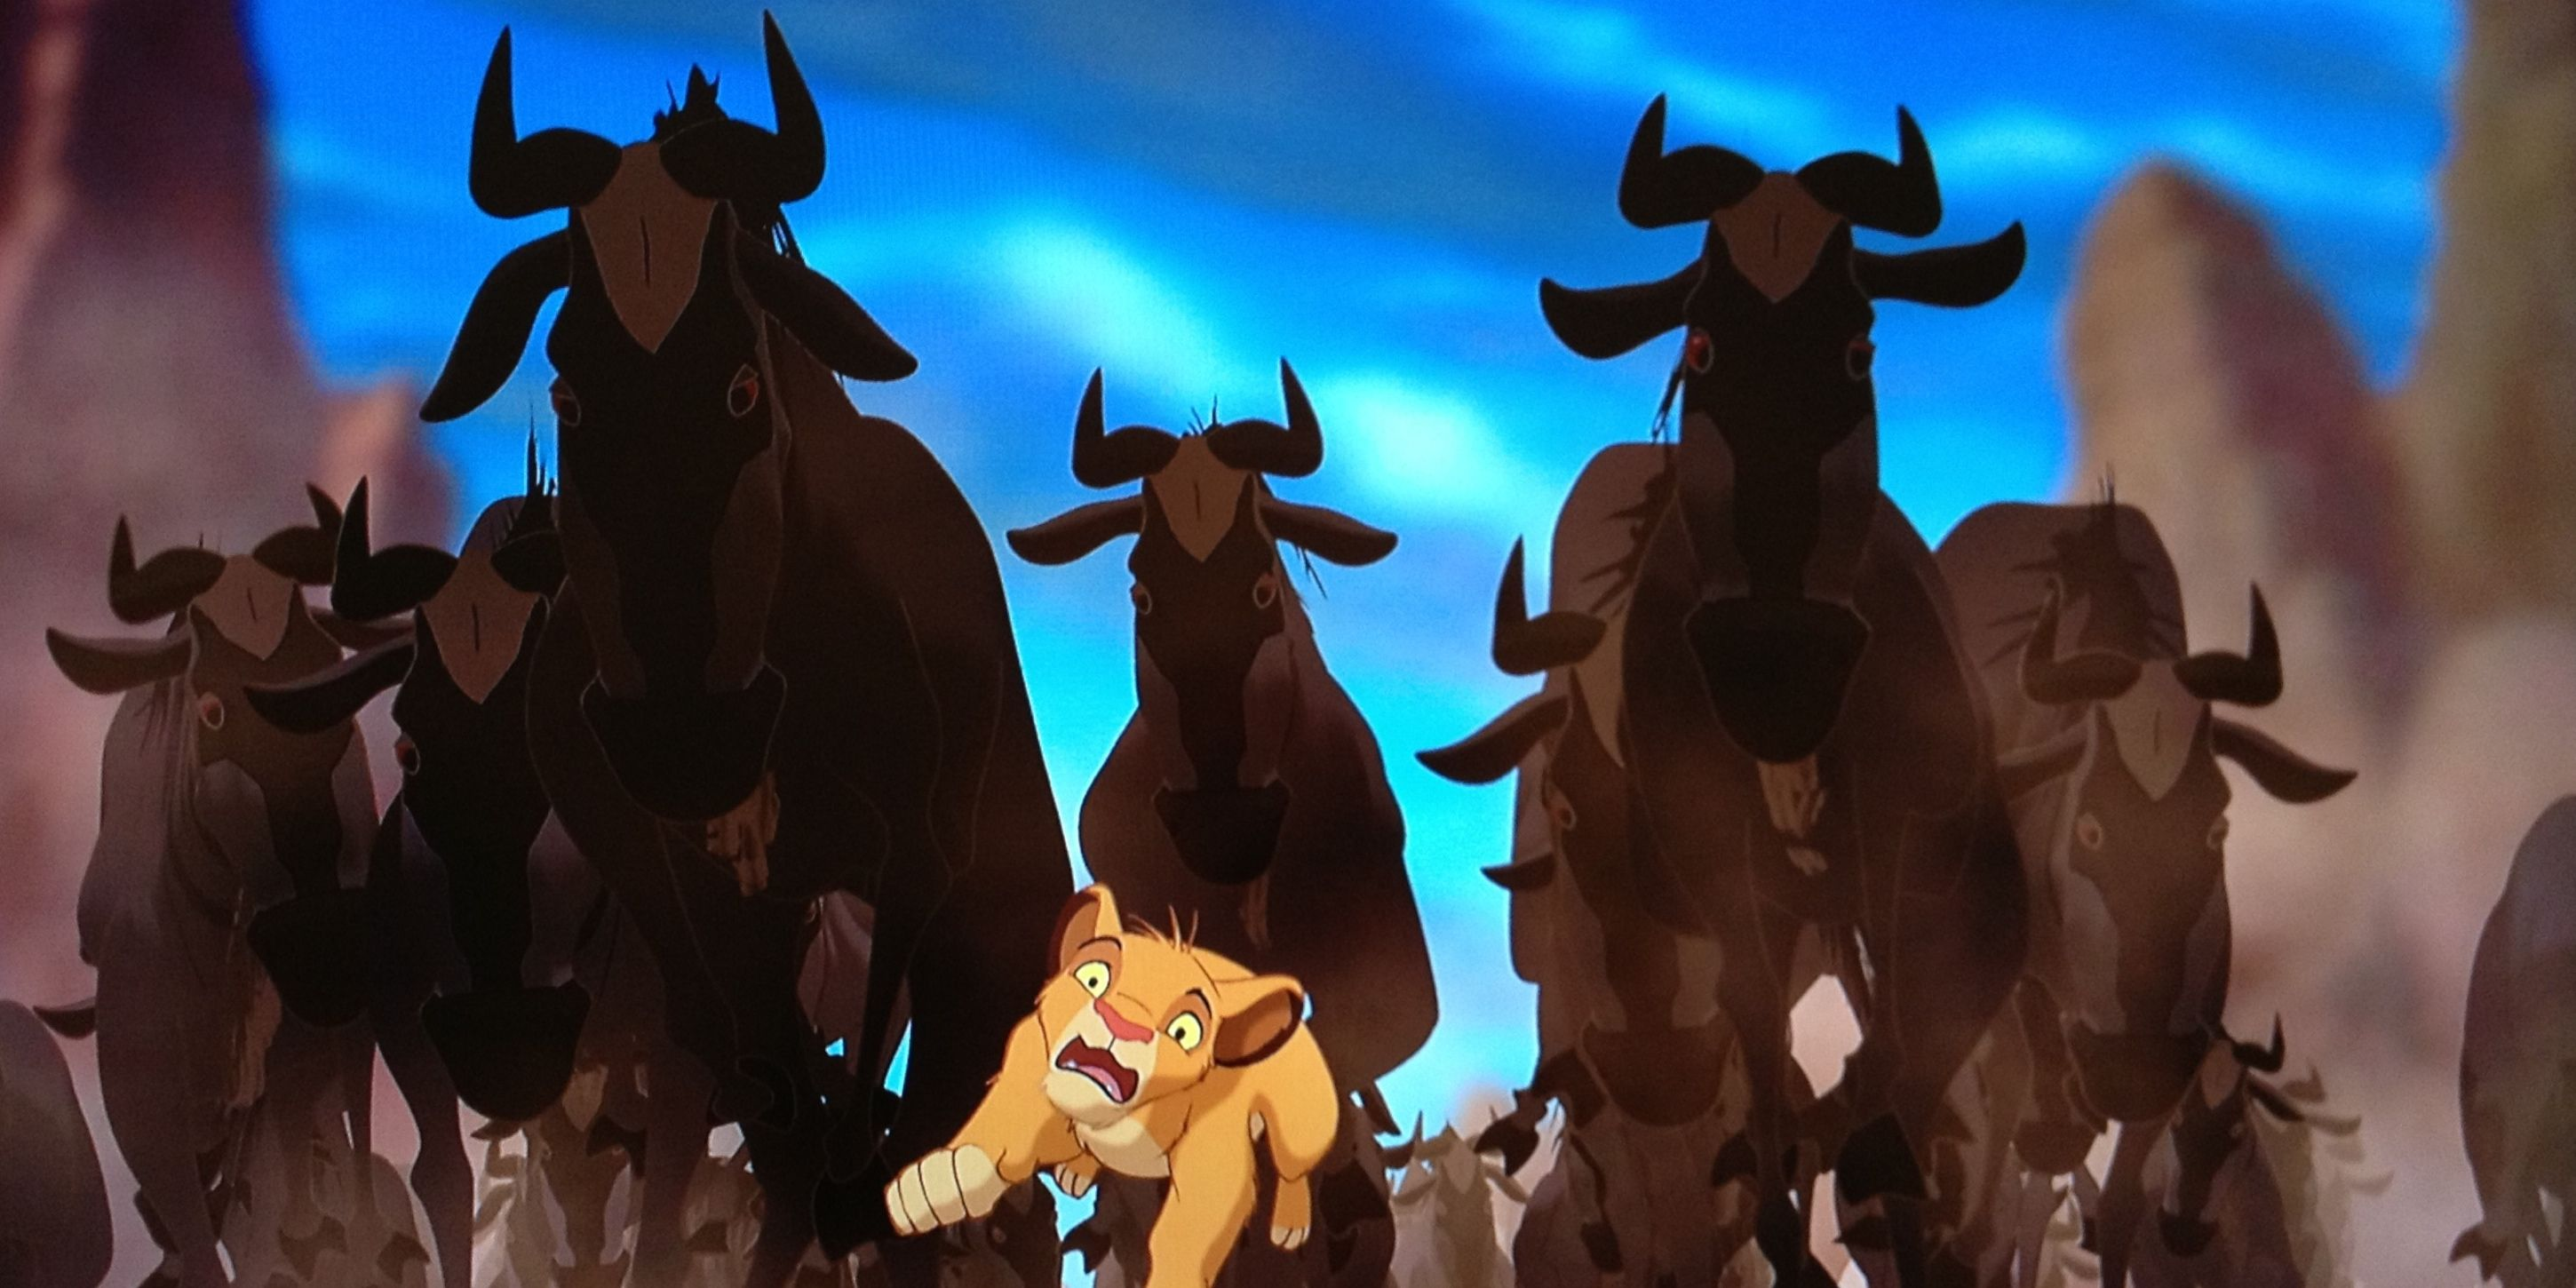 lion king stampede scene took 3 years to make screenrant